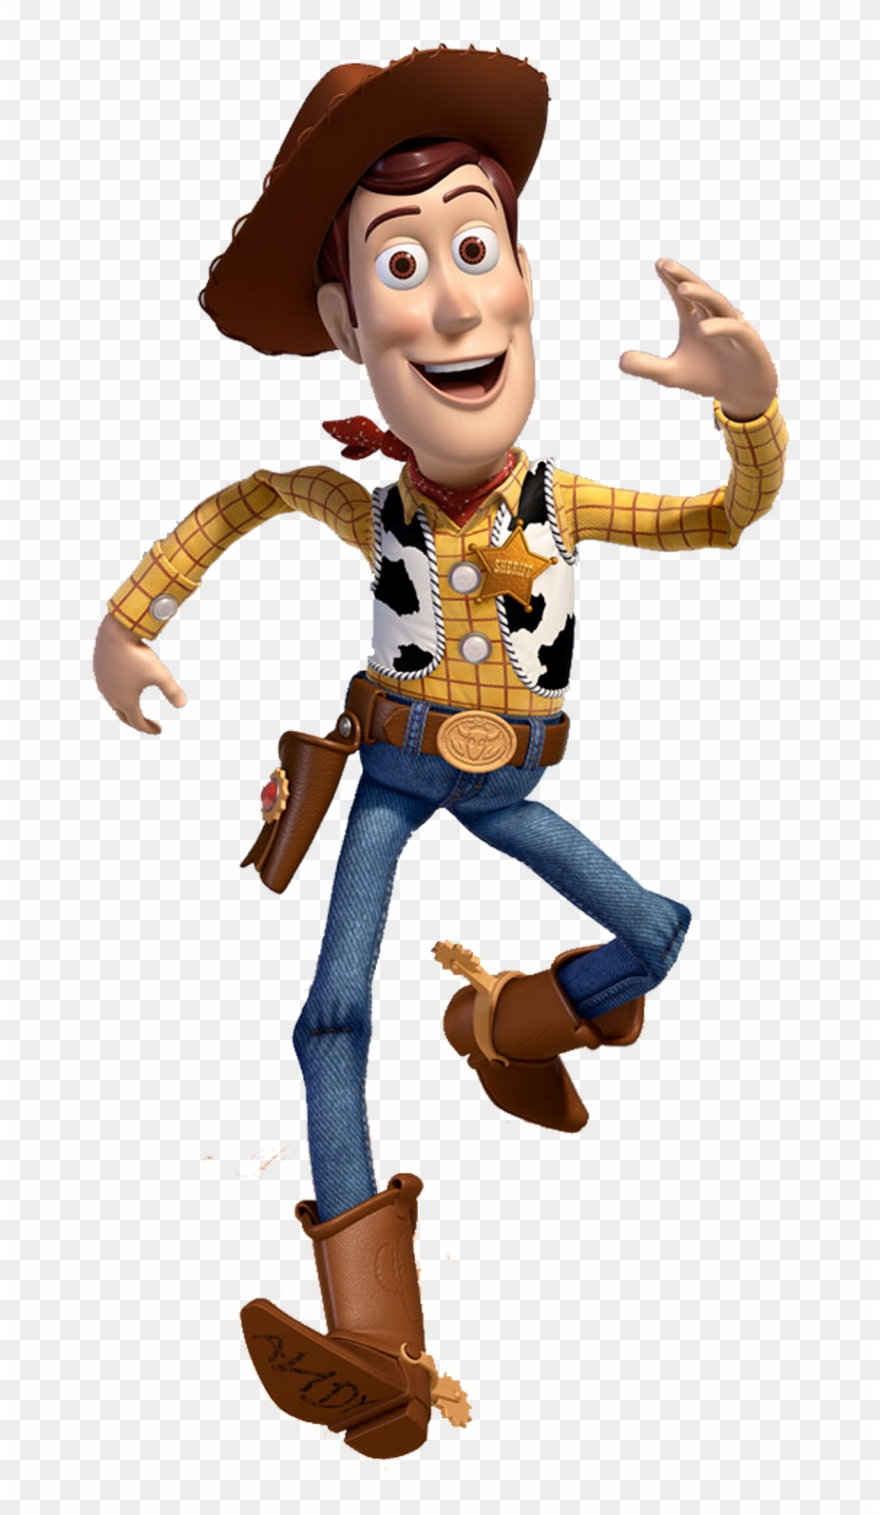 Woody Toy Story Characters Clipart.